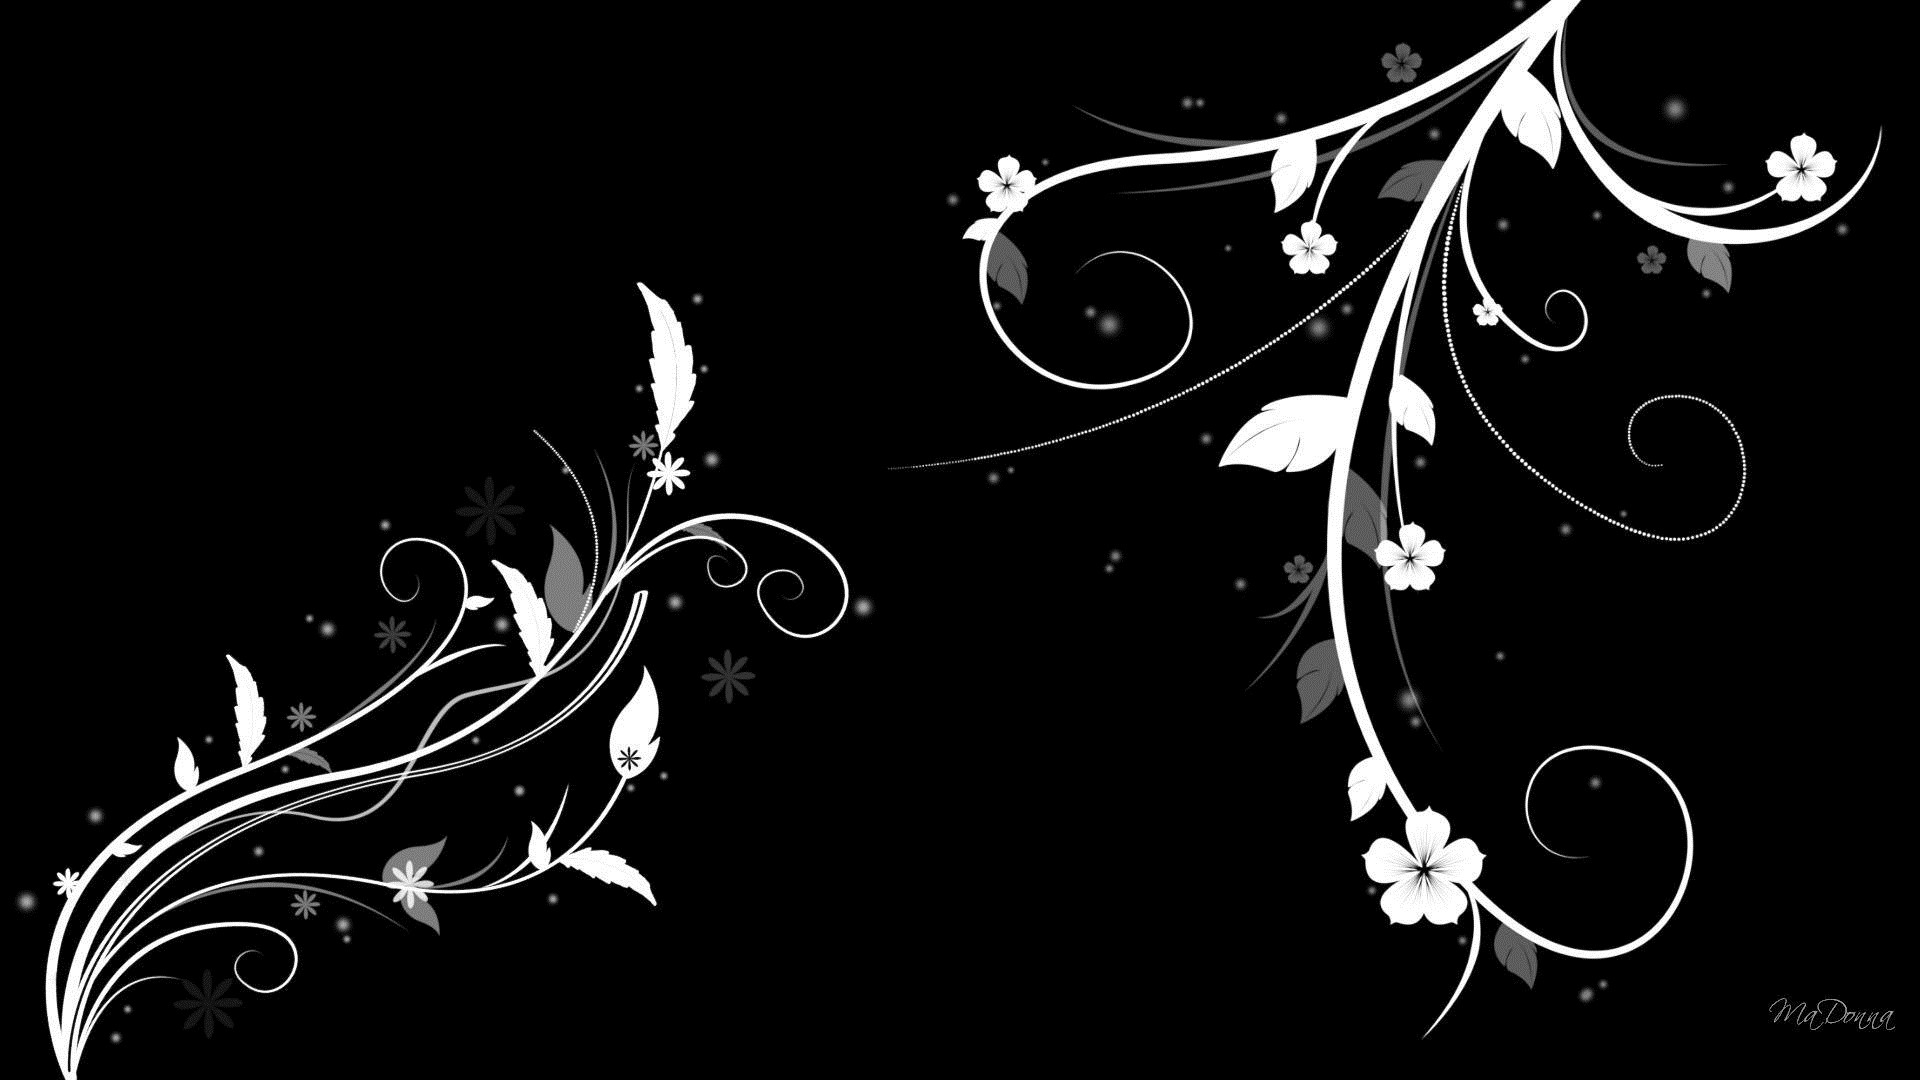 Black And White Floral Wallpaper image hd